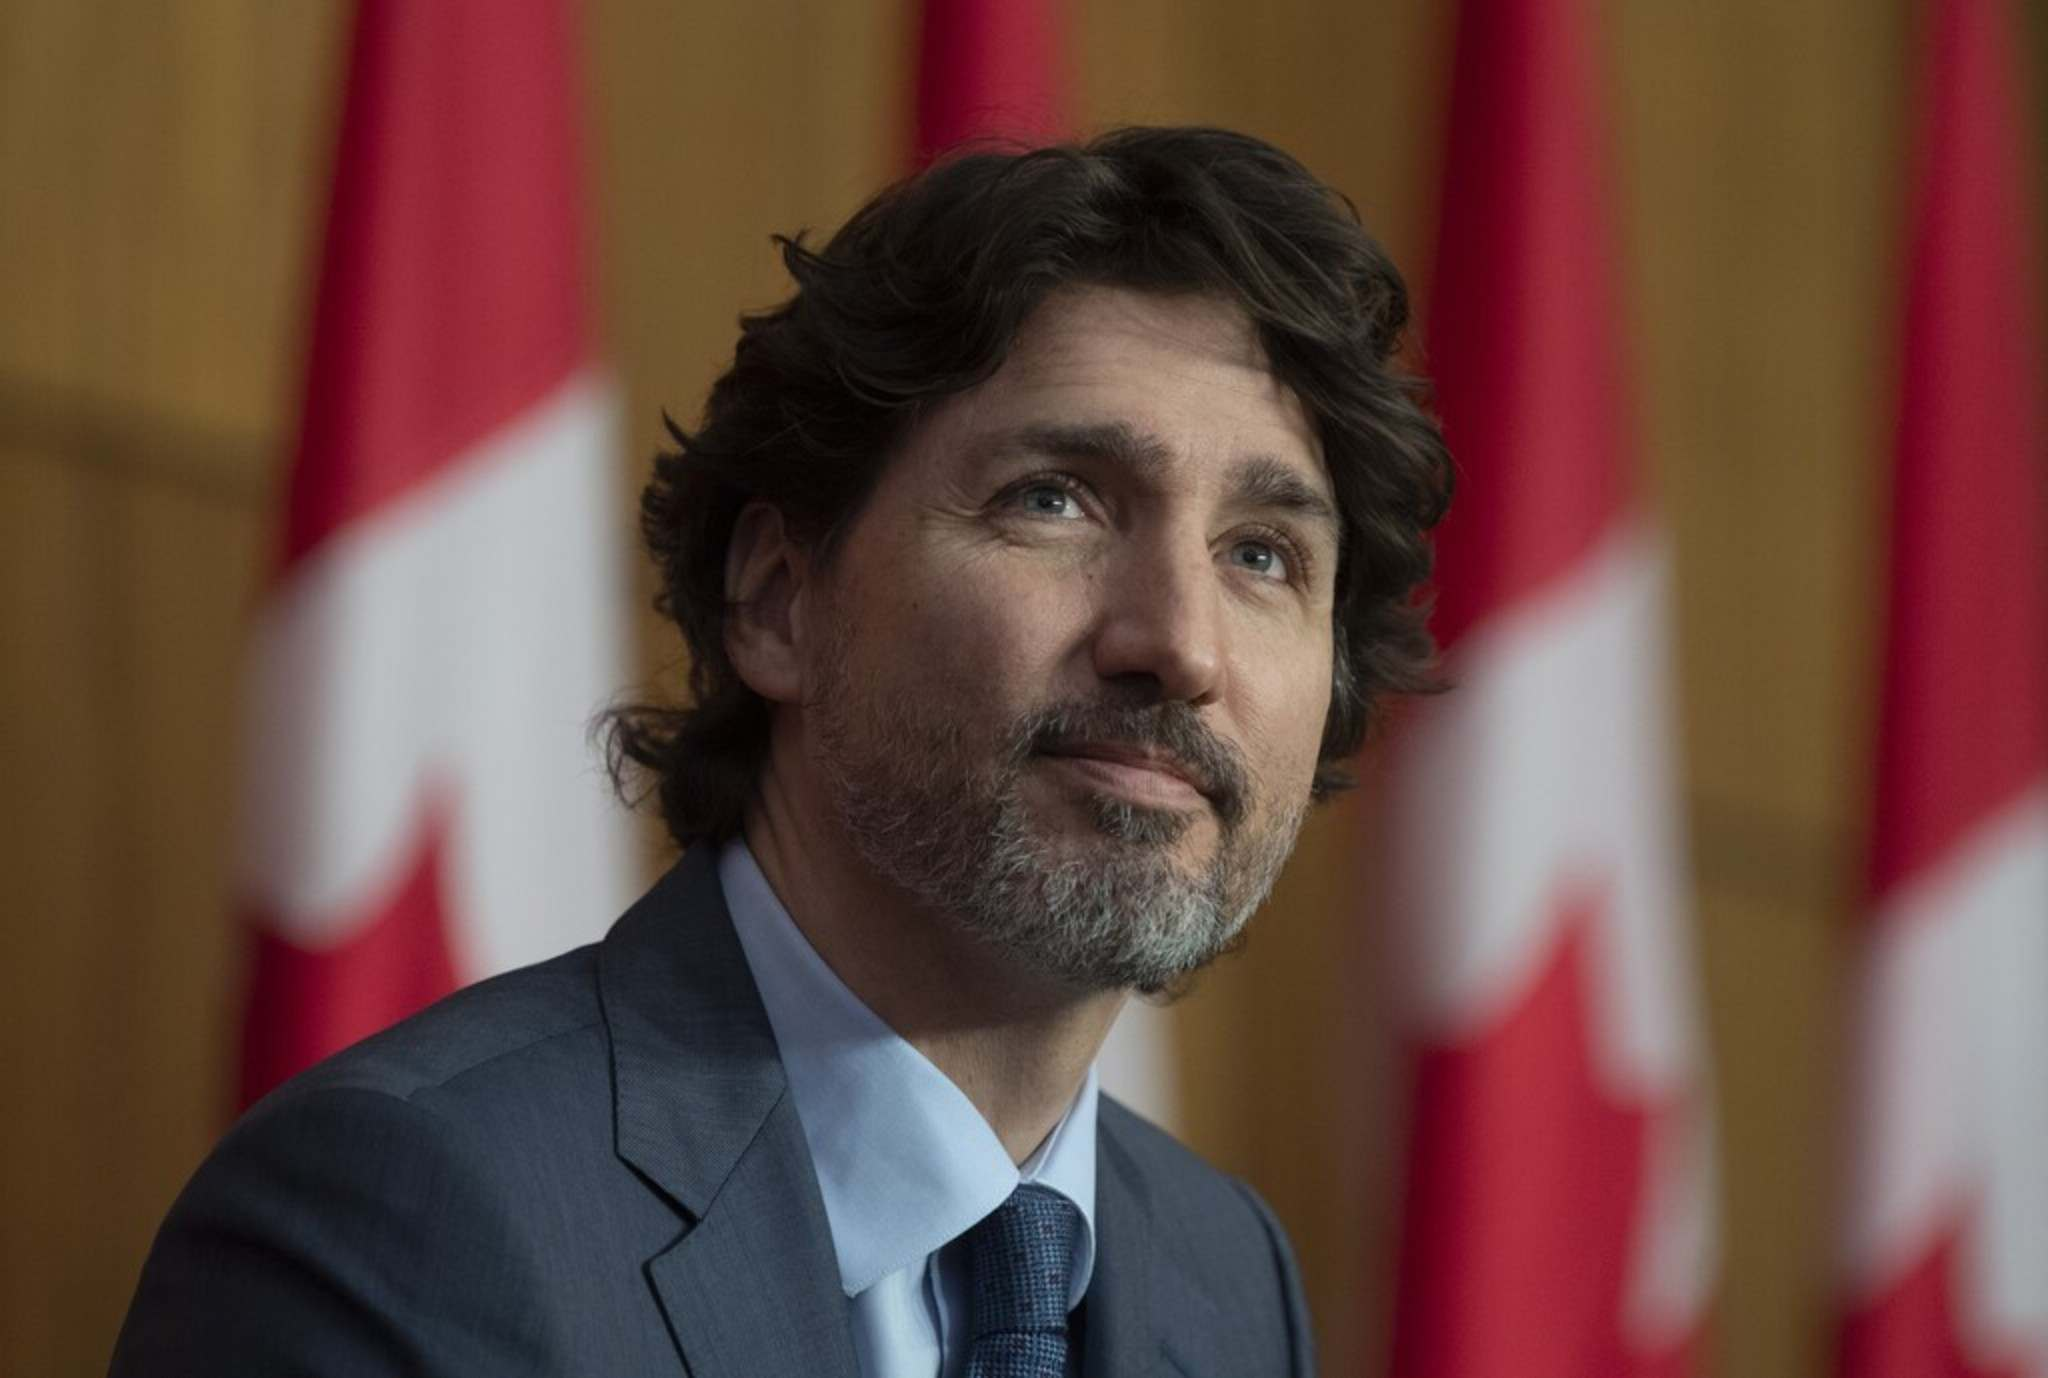 Prime Minister Justin Trudeau was just over a year into his first term when he allegedly made the 'I'm not your banker' remark to Manitoba Premier Brian Pallister. (Adrian Wyld / The Canadian Press)</p>